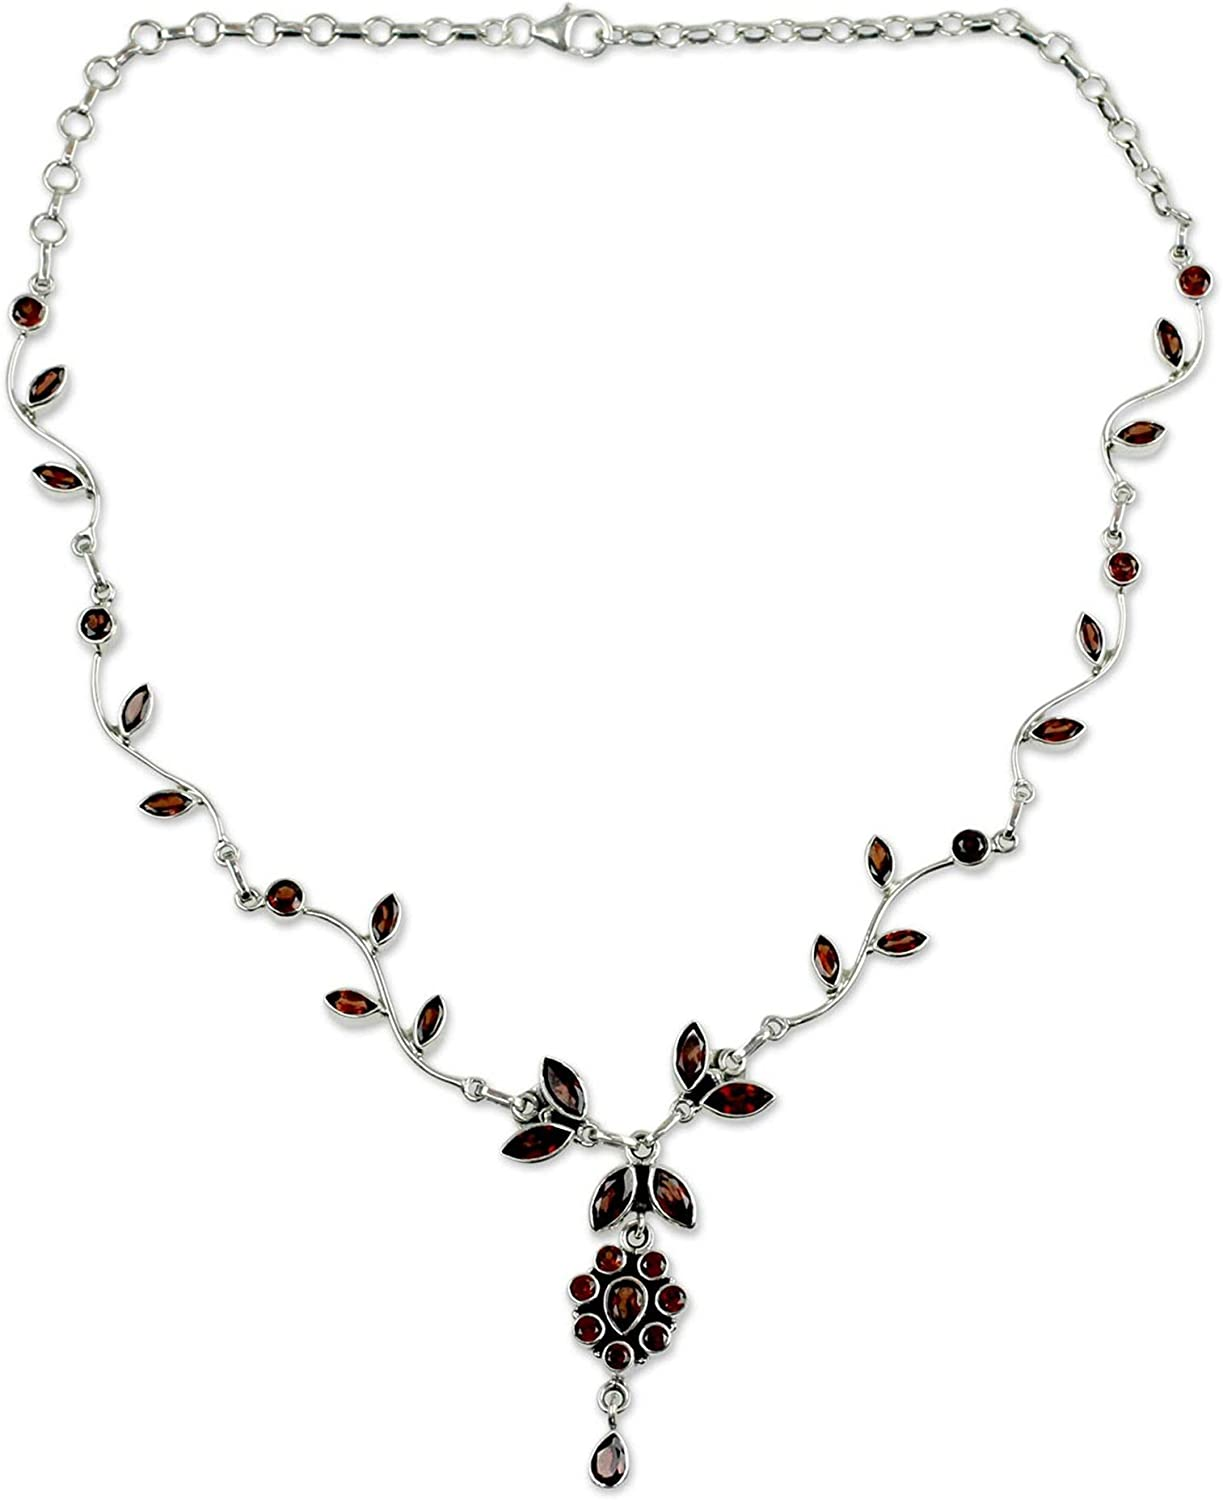 NOVICA Garnet .925 Sterling Silver Flower 14.2 Pendant Necklace Max 49% OFF Free shipping on posting reviews